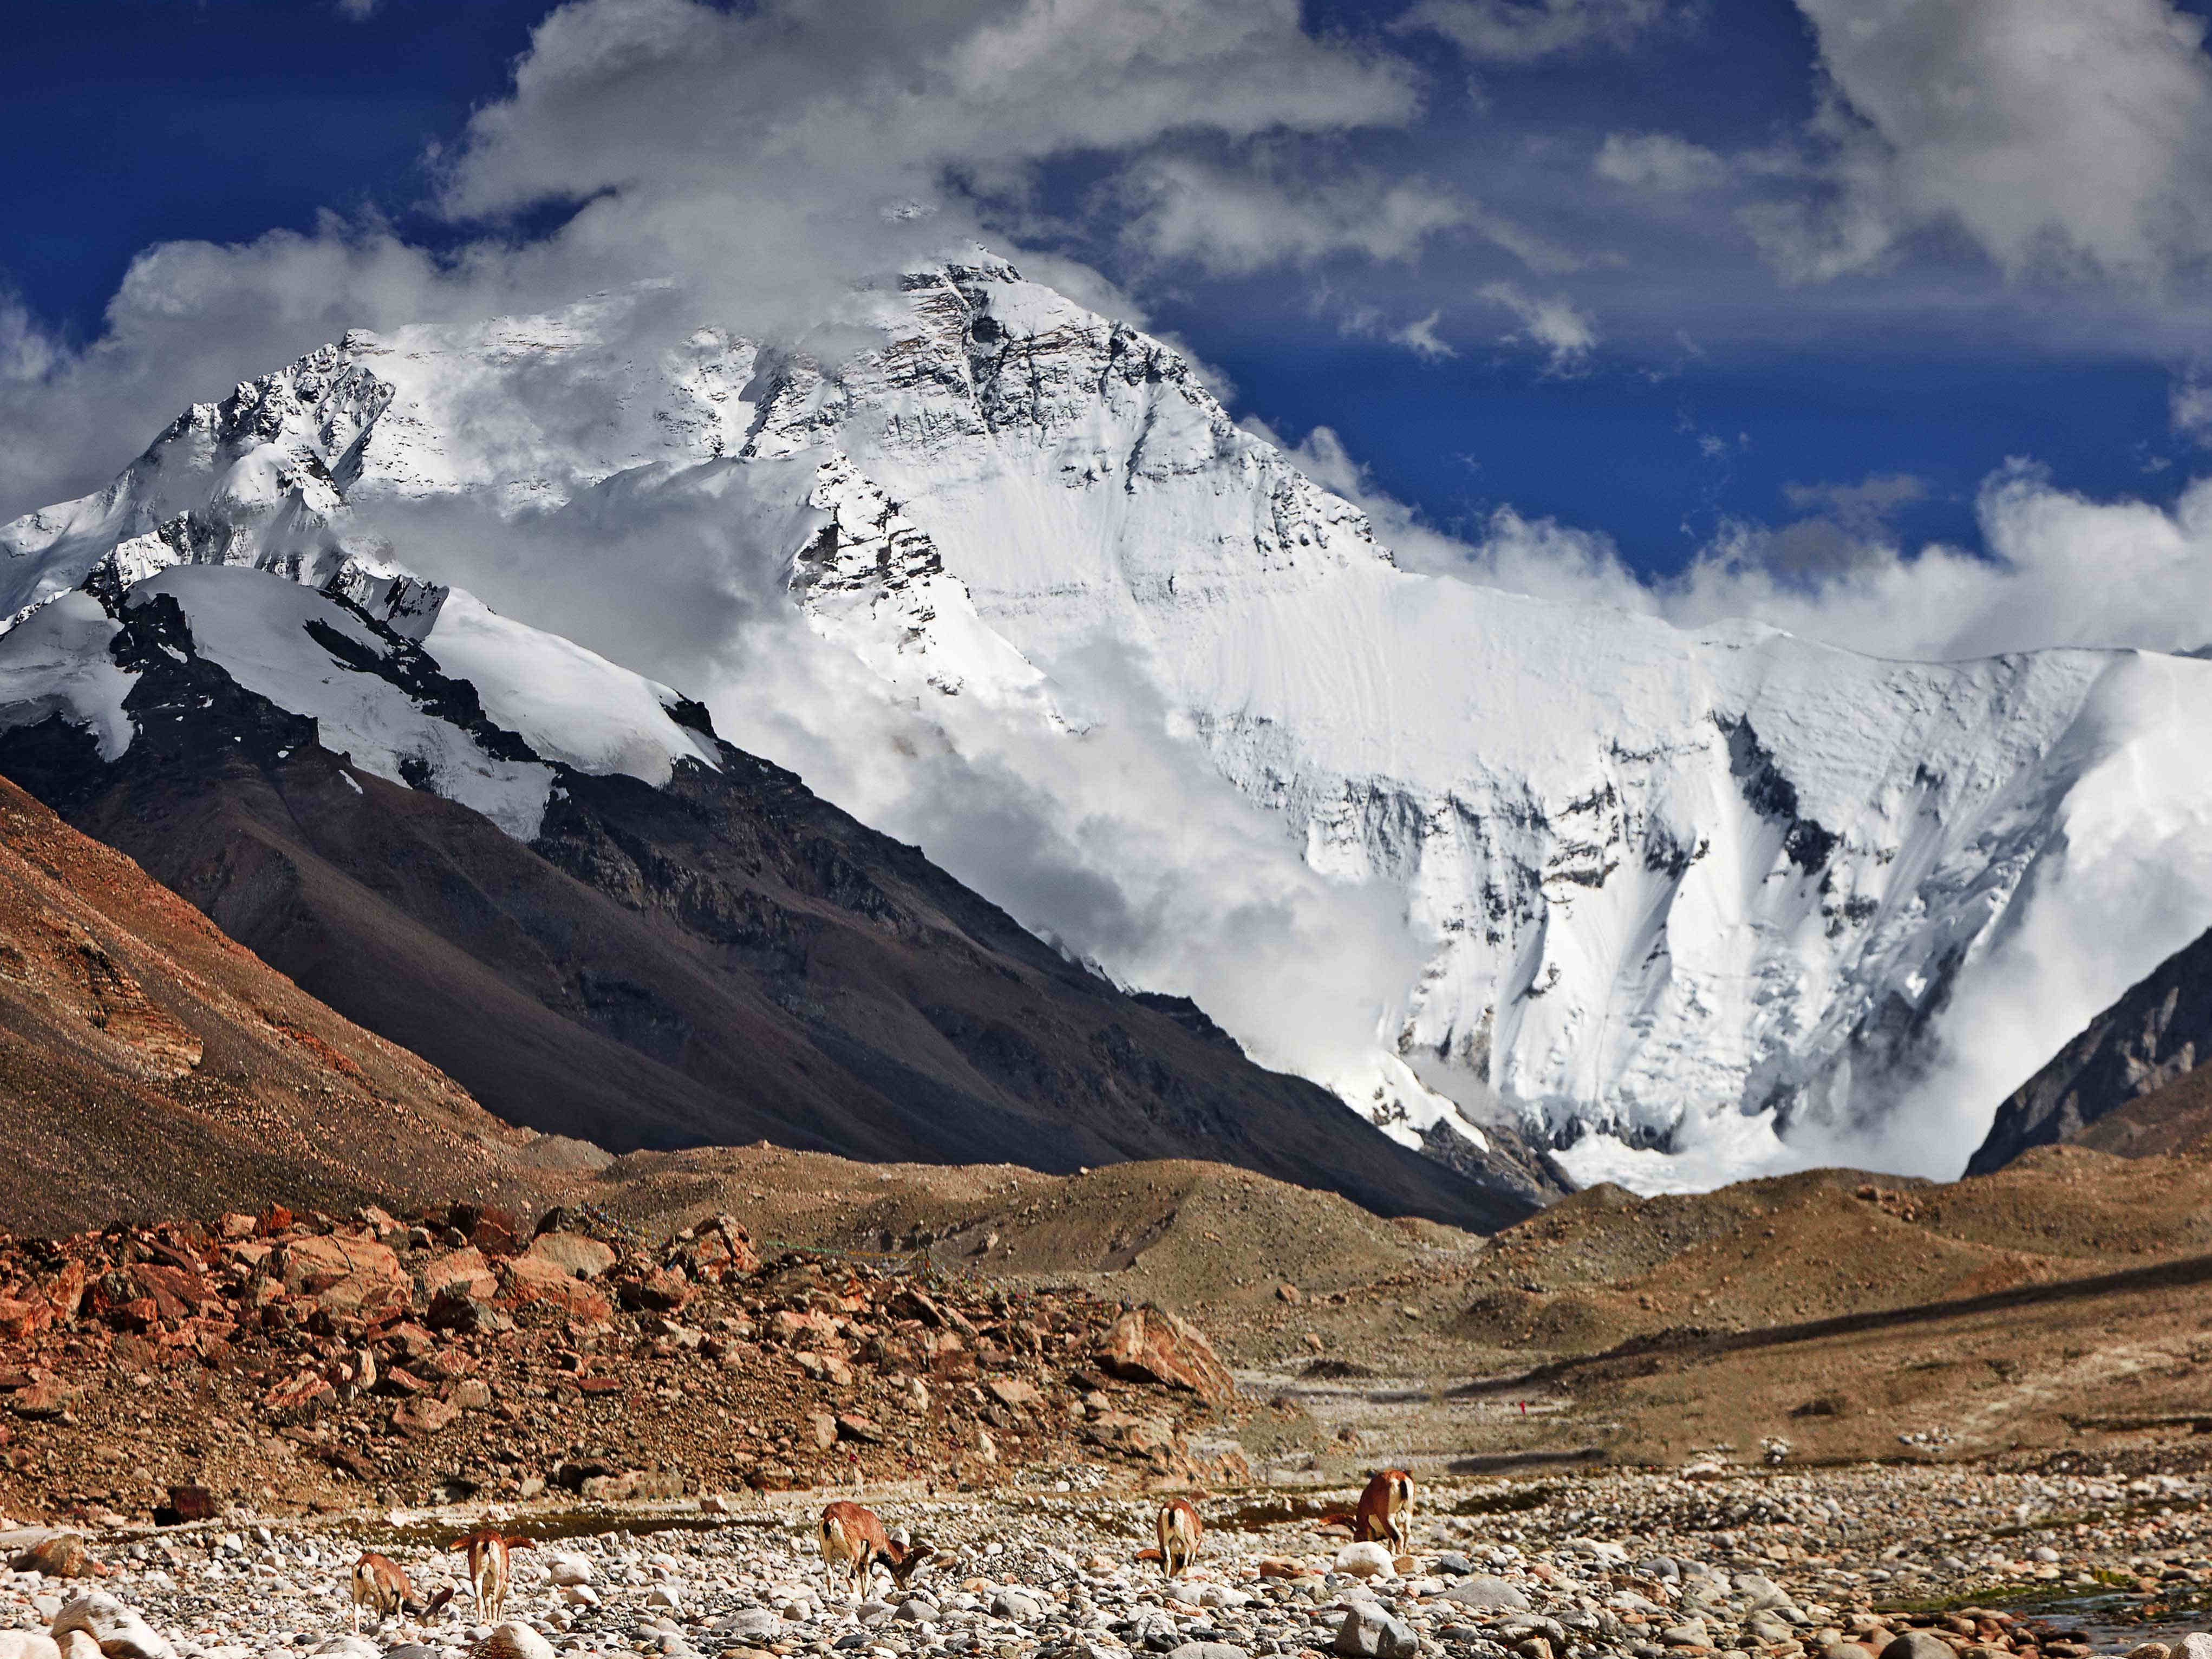 'Roof of the World': China conducts new research on Mount Qomolangma